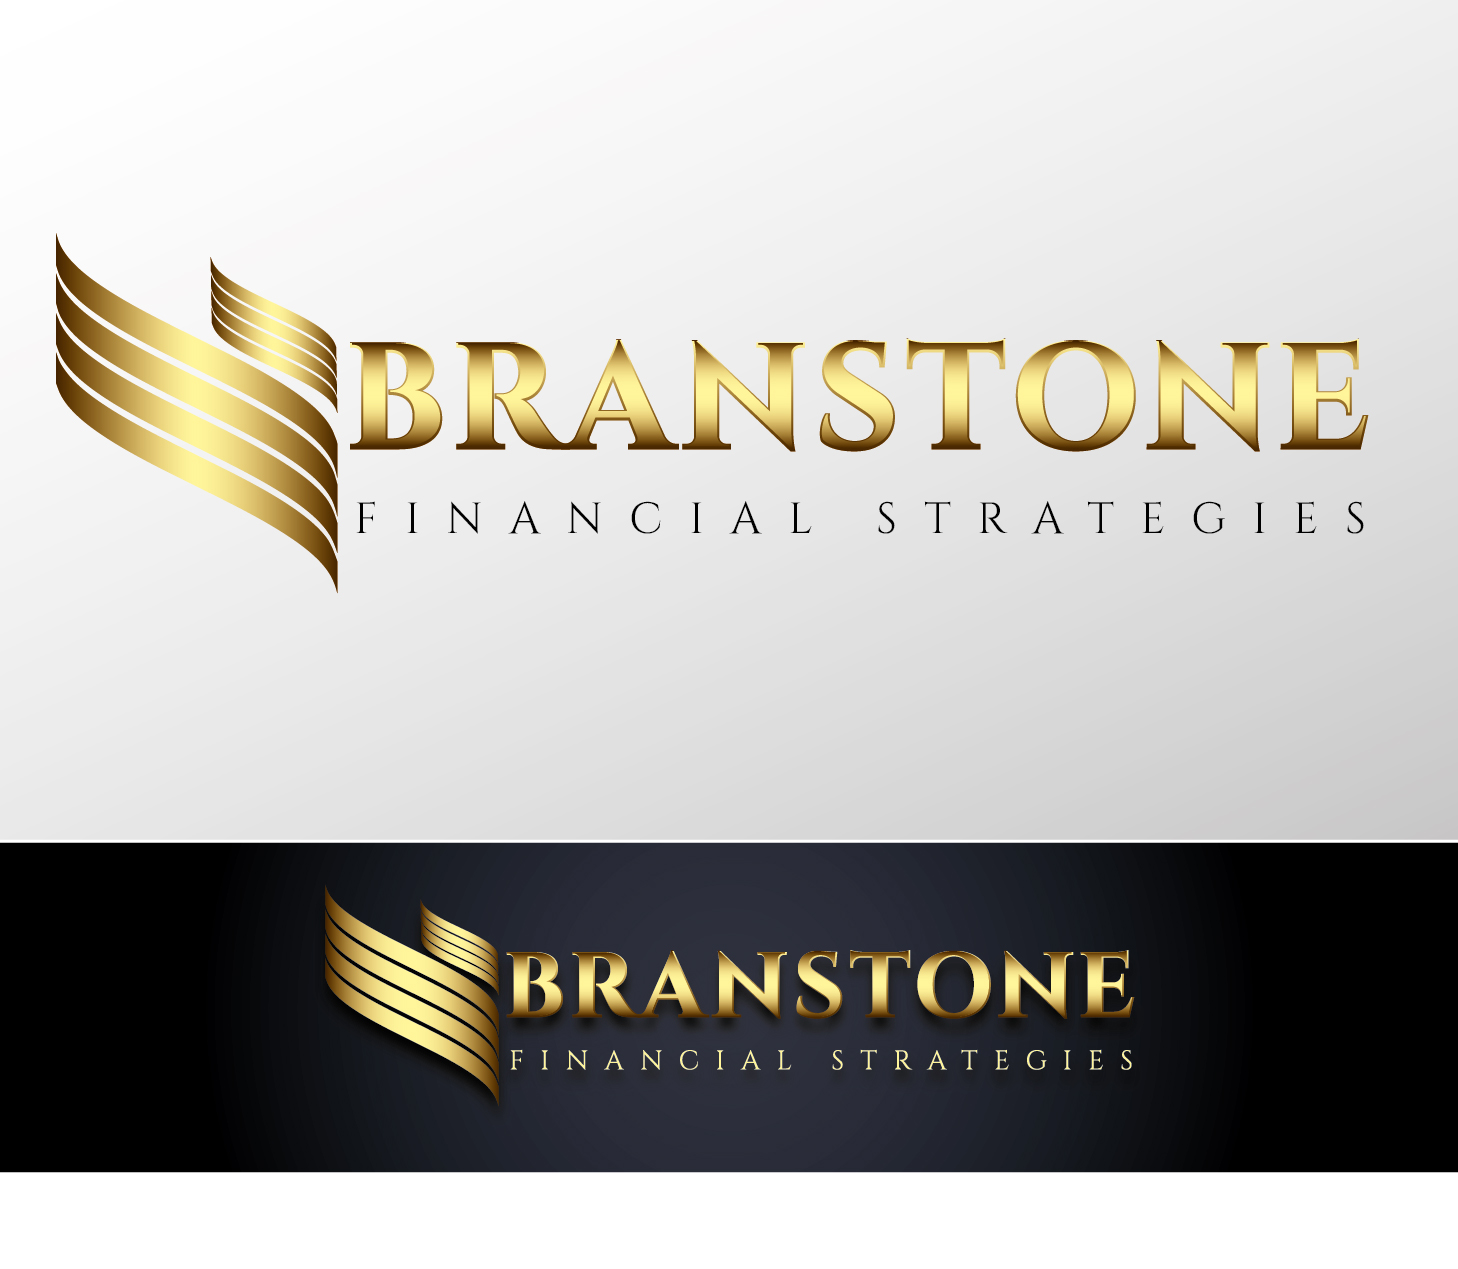 Logo Design by VENTSISLAV KOVACHEV - Entry No. 72 in the Logo Design Contest Inspiring Logo Design for Branstone Financial Strategies.